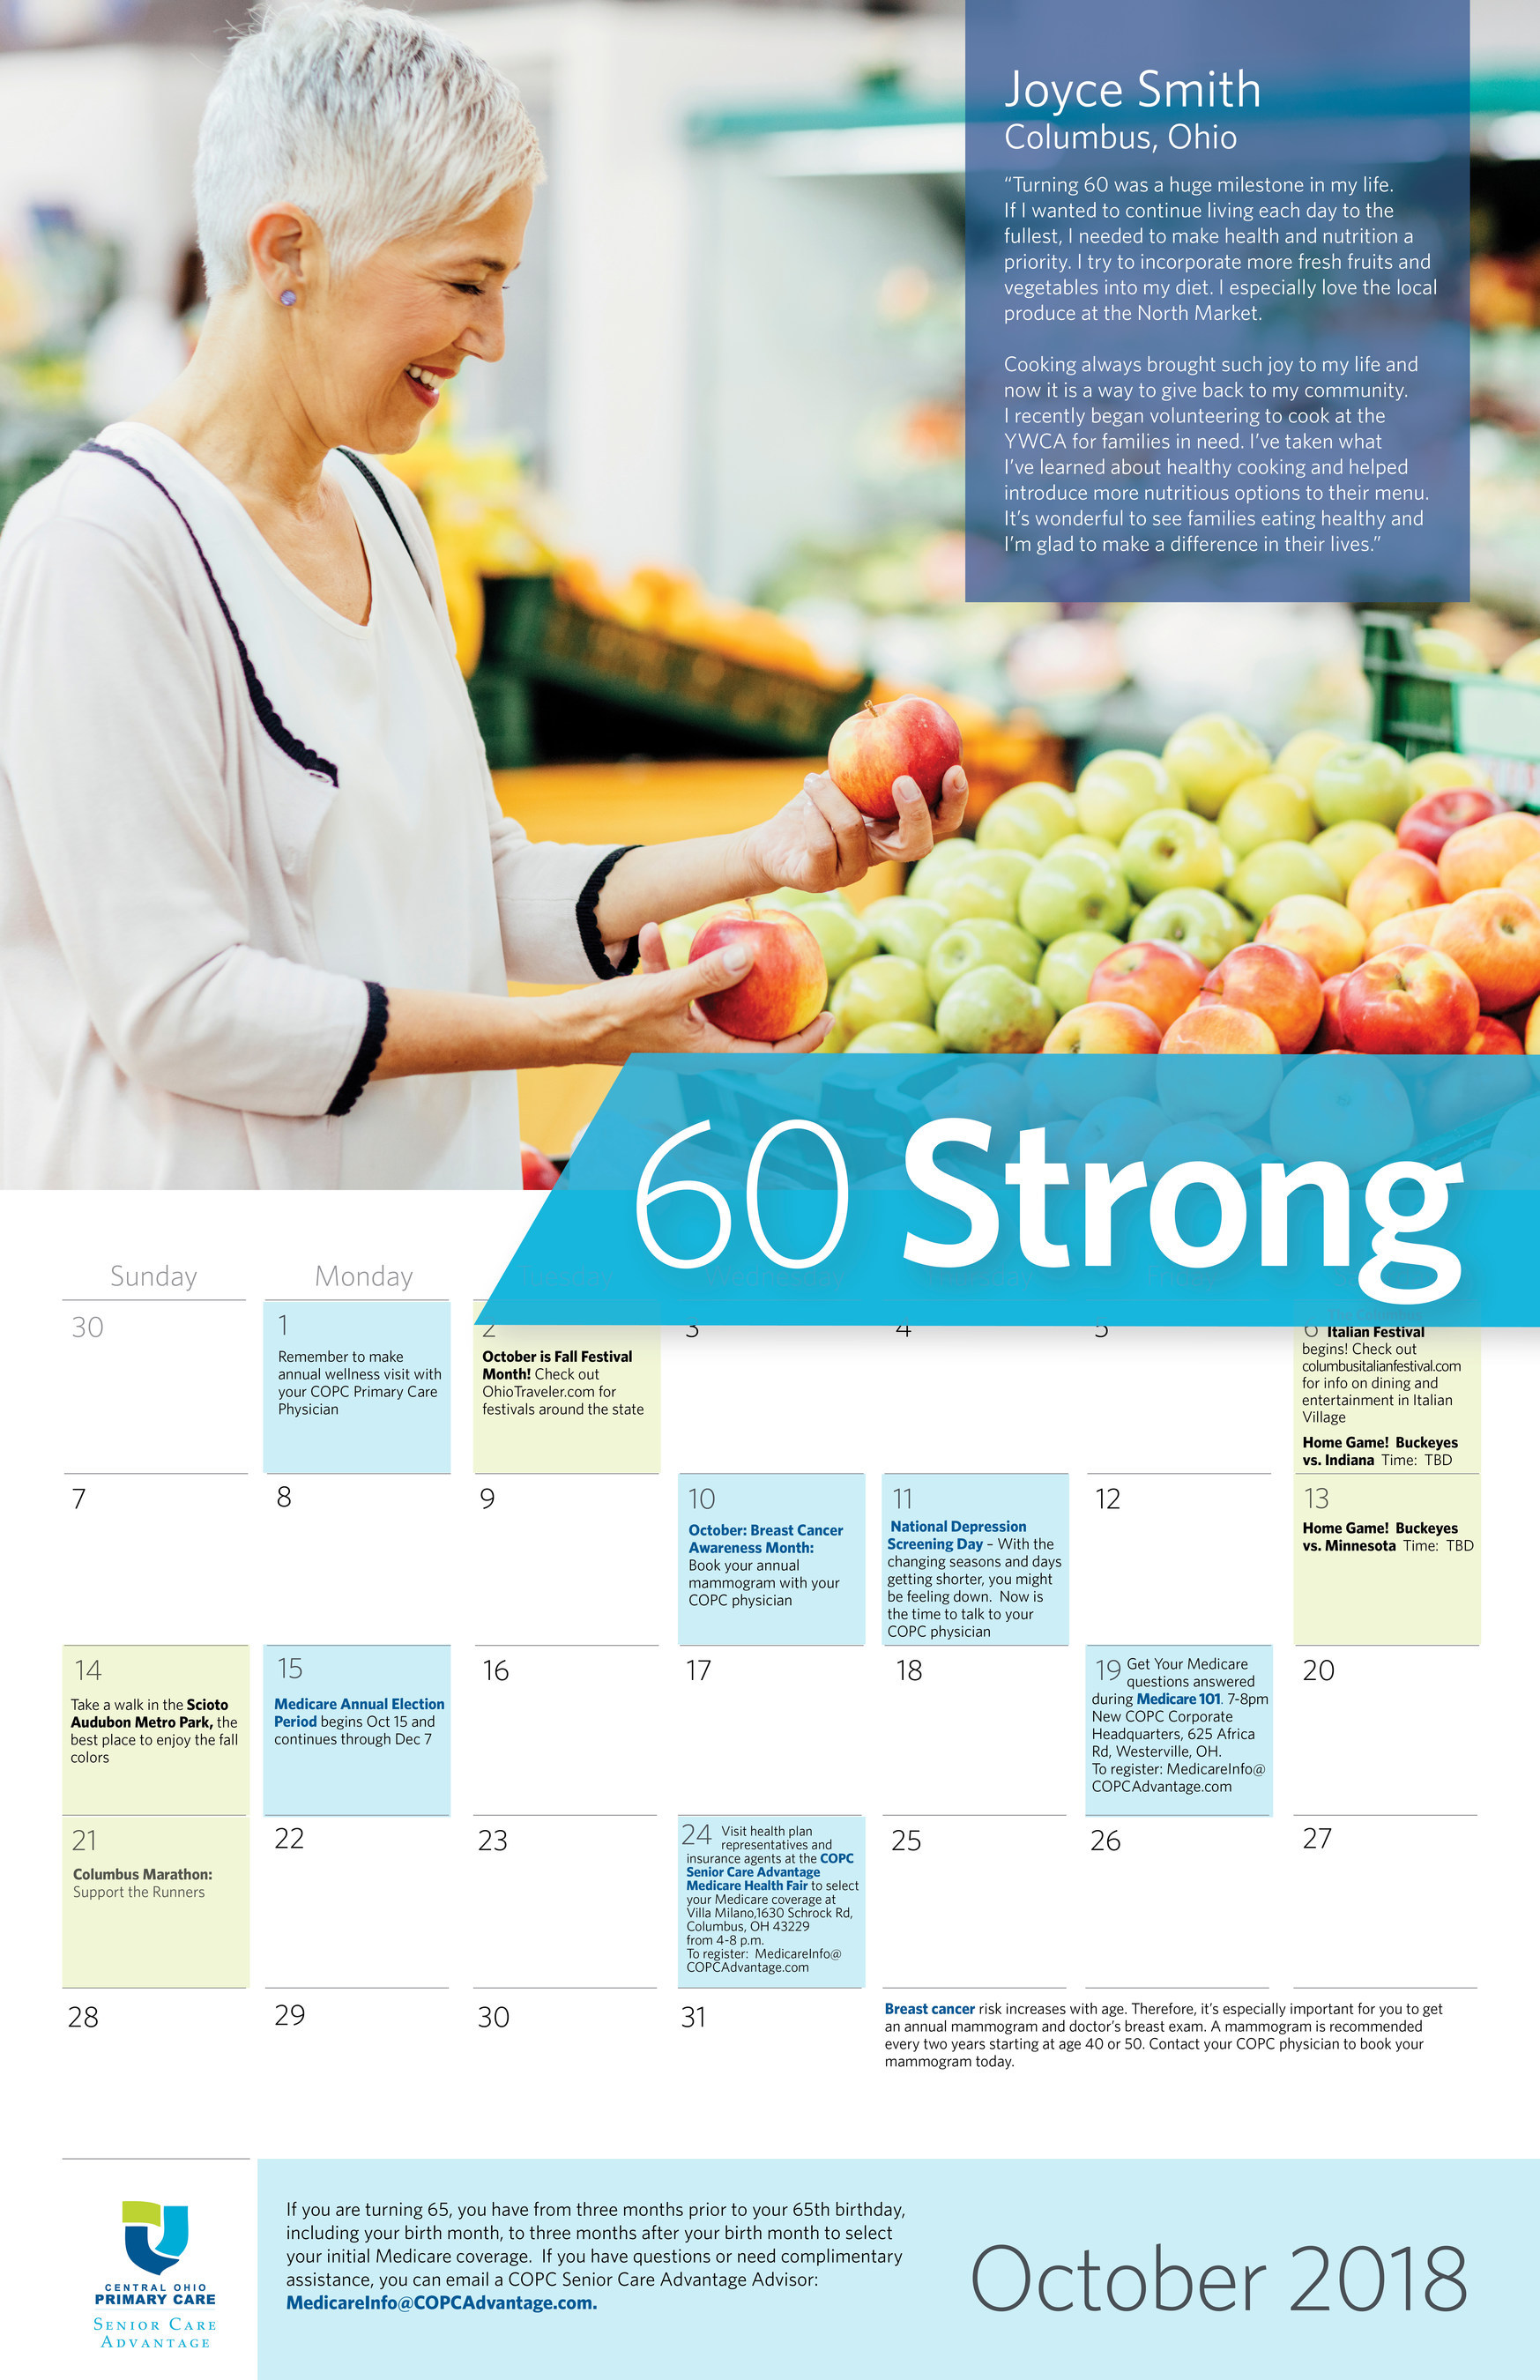 60 IS THE NEW 40 -- Enter the 60 Strong Contest to be featured on an exclusive Columbus calendar. If you are between the ages of 60-69 and believe in healthy living, go to ColumbusSixtyStrong.com.